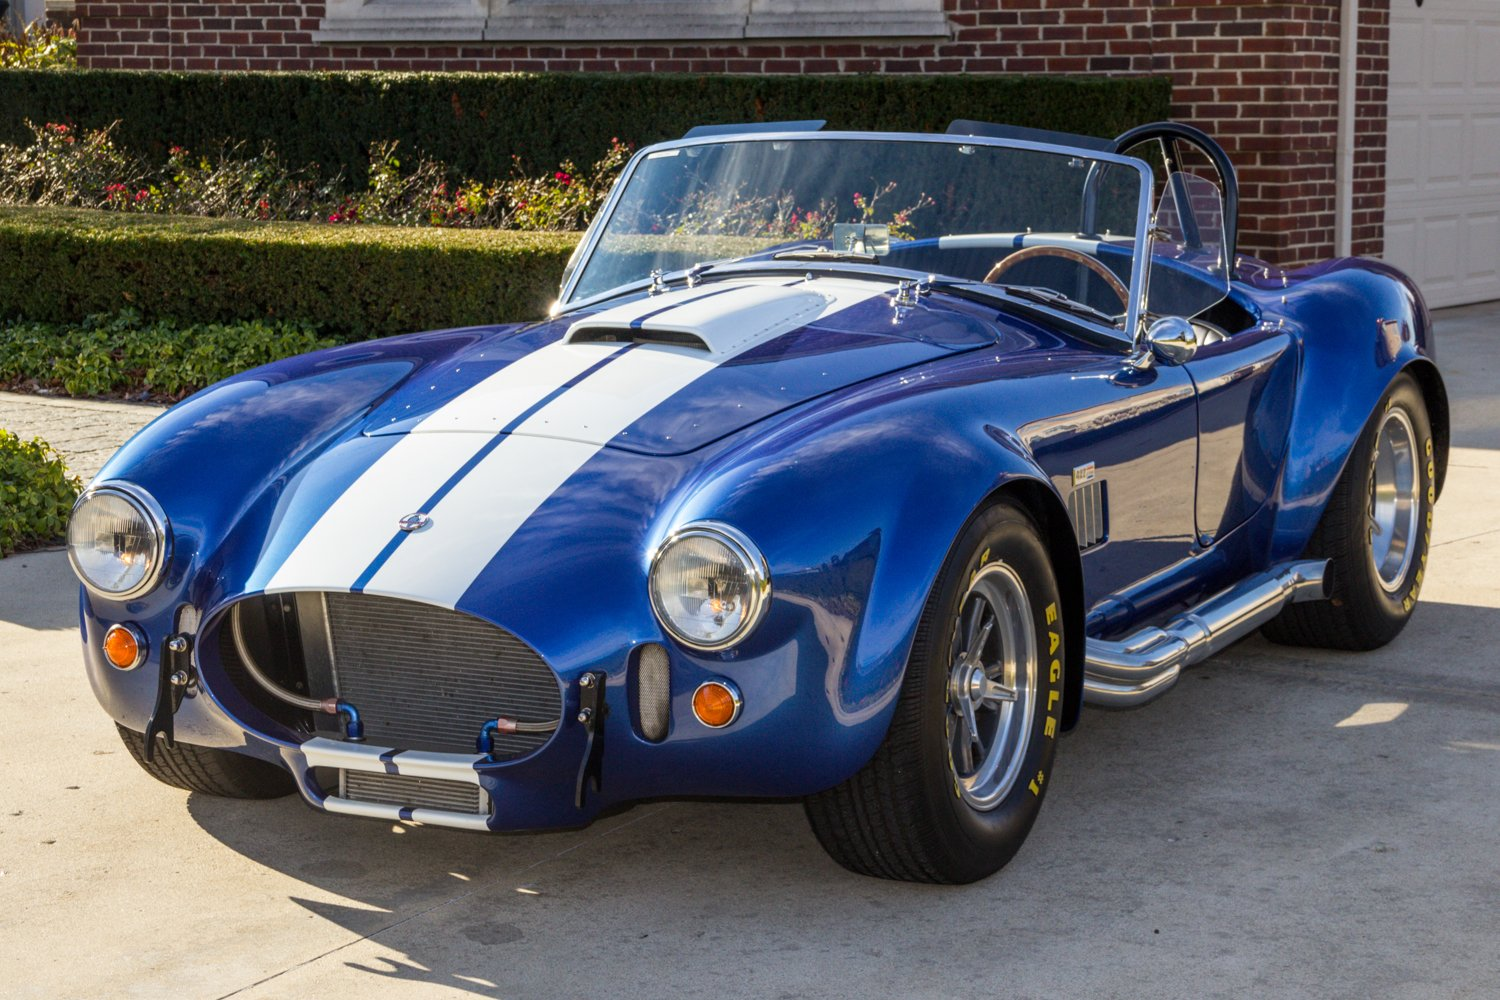 hight resolution of 1965 shelby cobra classic cars for sale michigan muscle u0026 oldac cobra kit car wiring